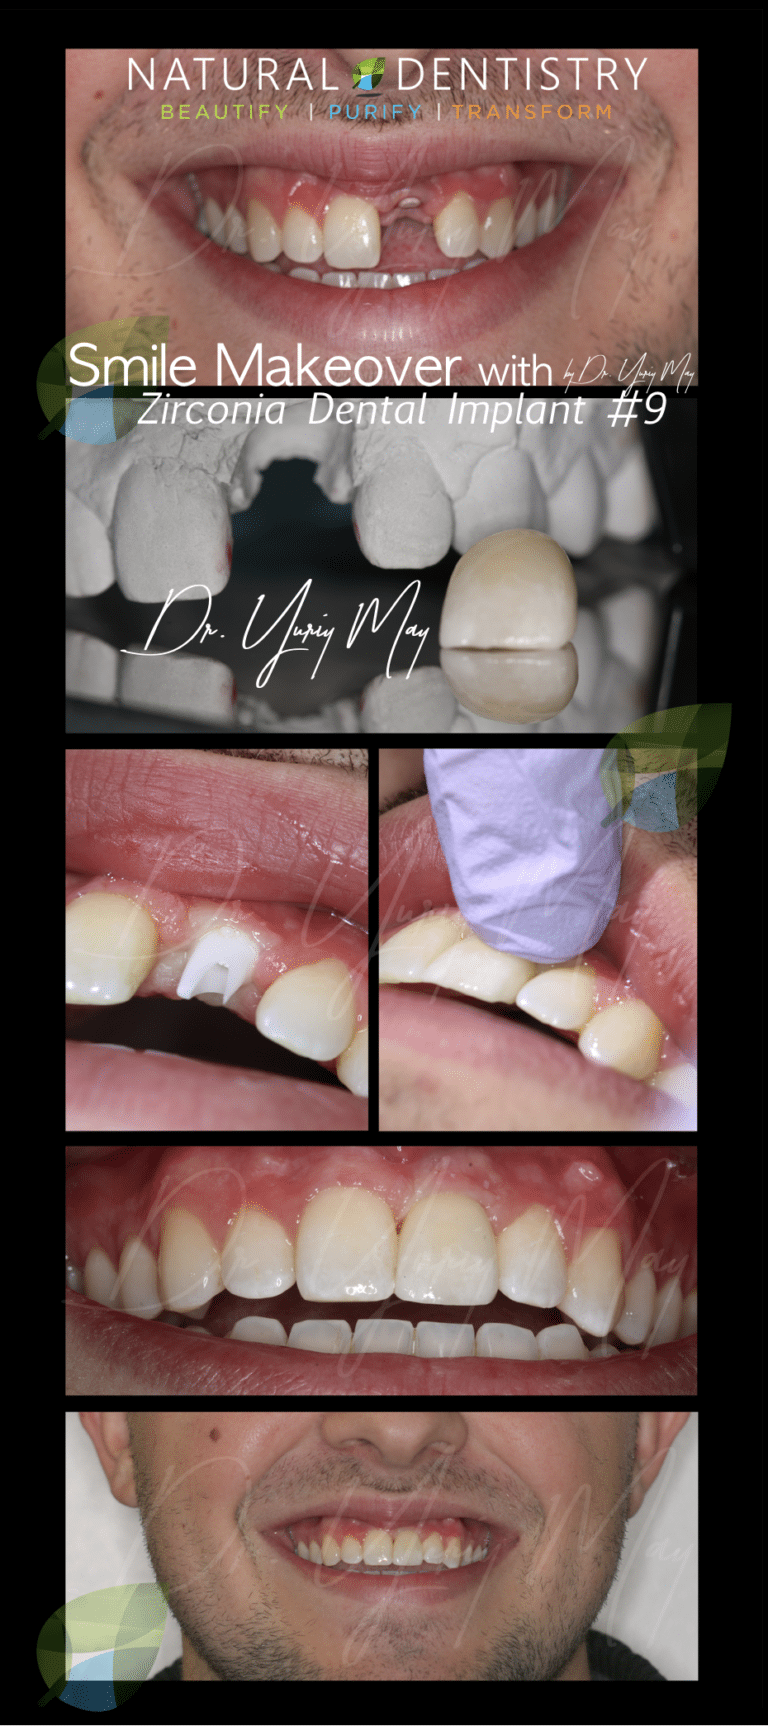 Best Cosmetic Dentist NY CT NJ MA Zirconia Dental Implants | Natural Dentistry Dr. Yuriy May Veneers